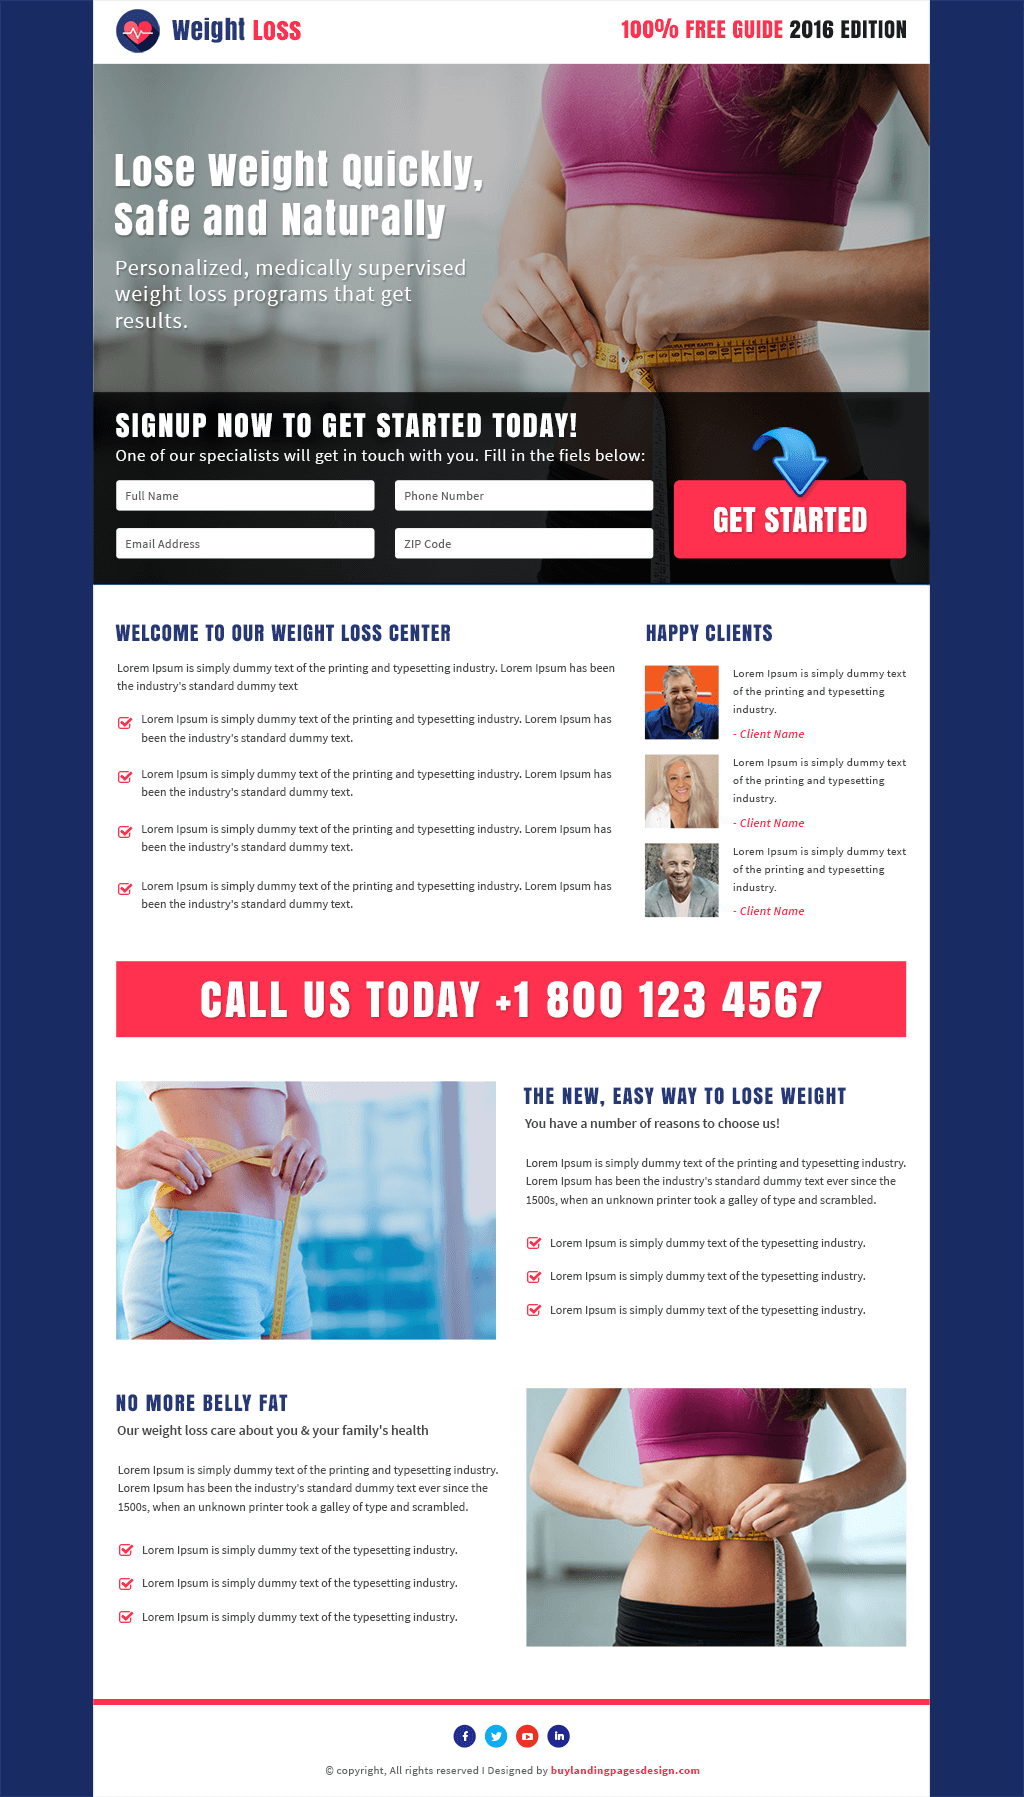 Responsive Weight Loss Service Landing Page Design Template